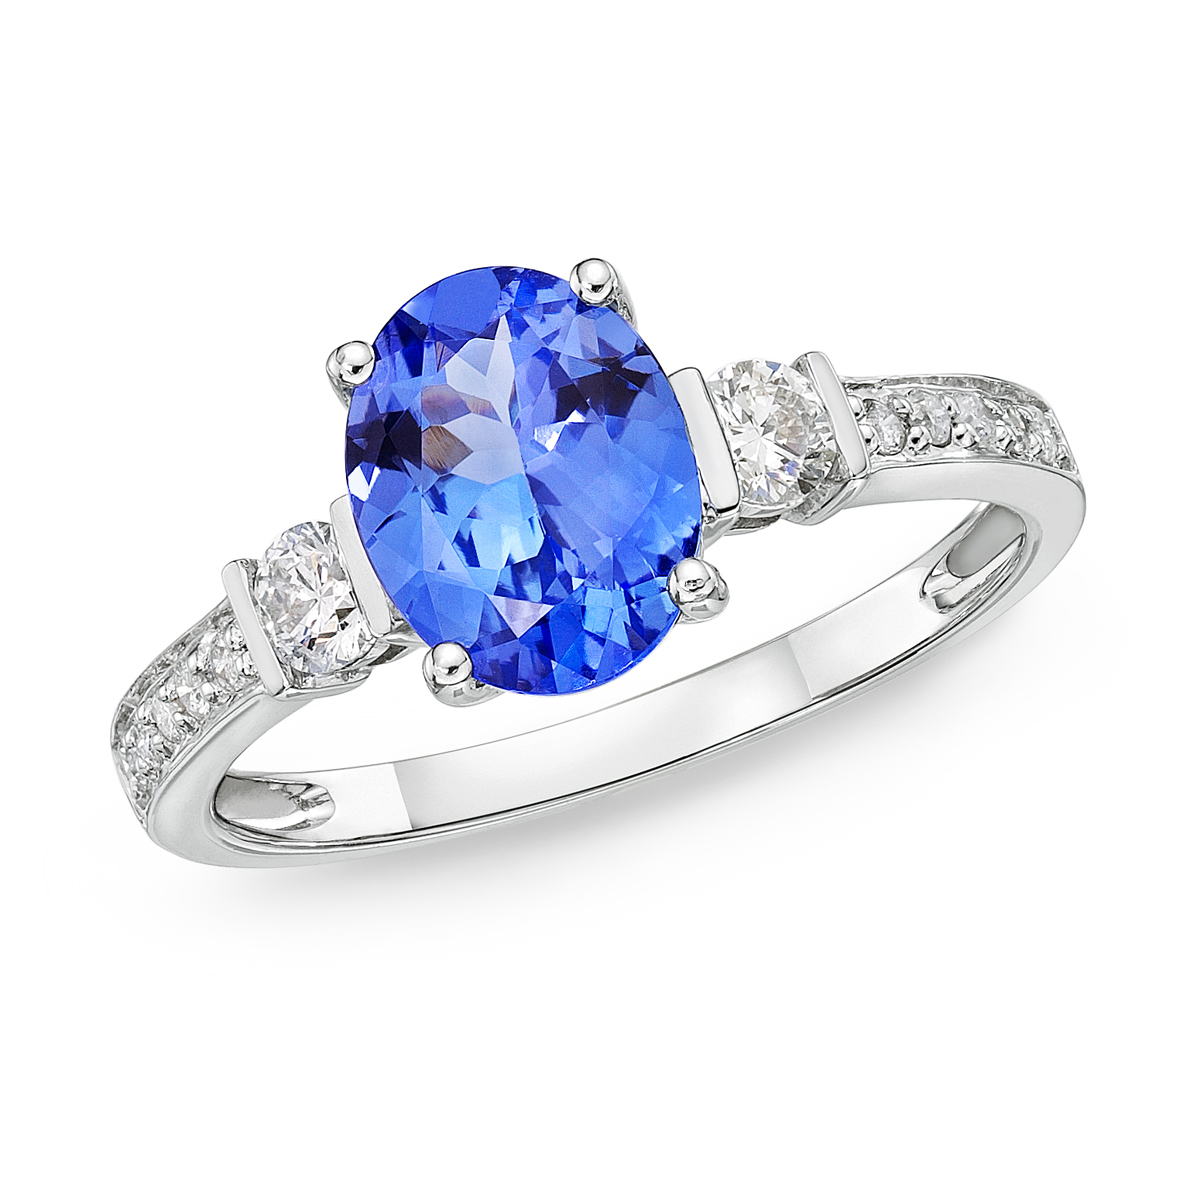 tanzanite rings eveningsky ring tanzanite u0026 diamonds ... pdghlst